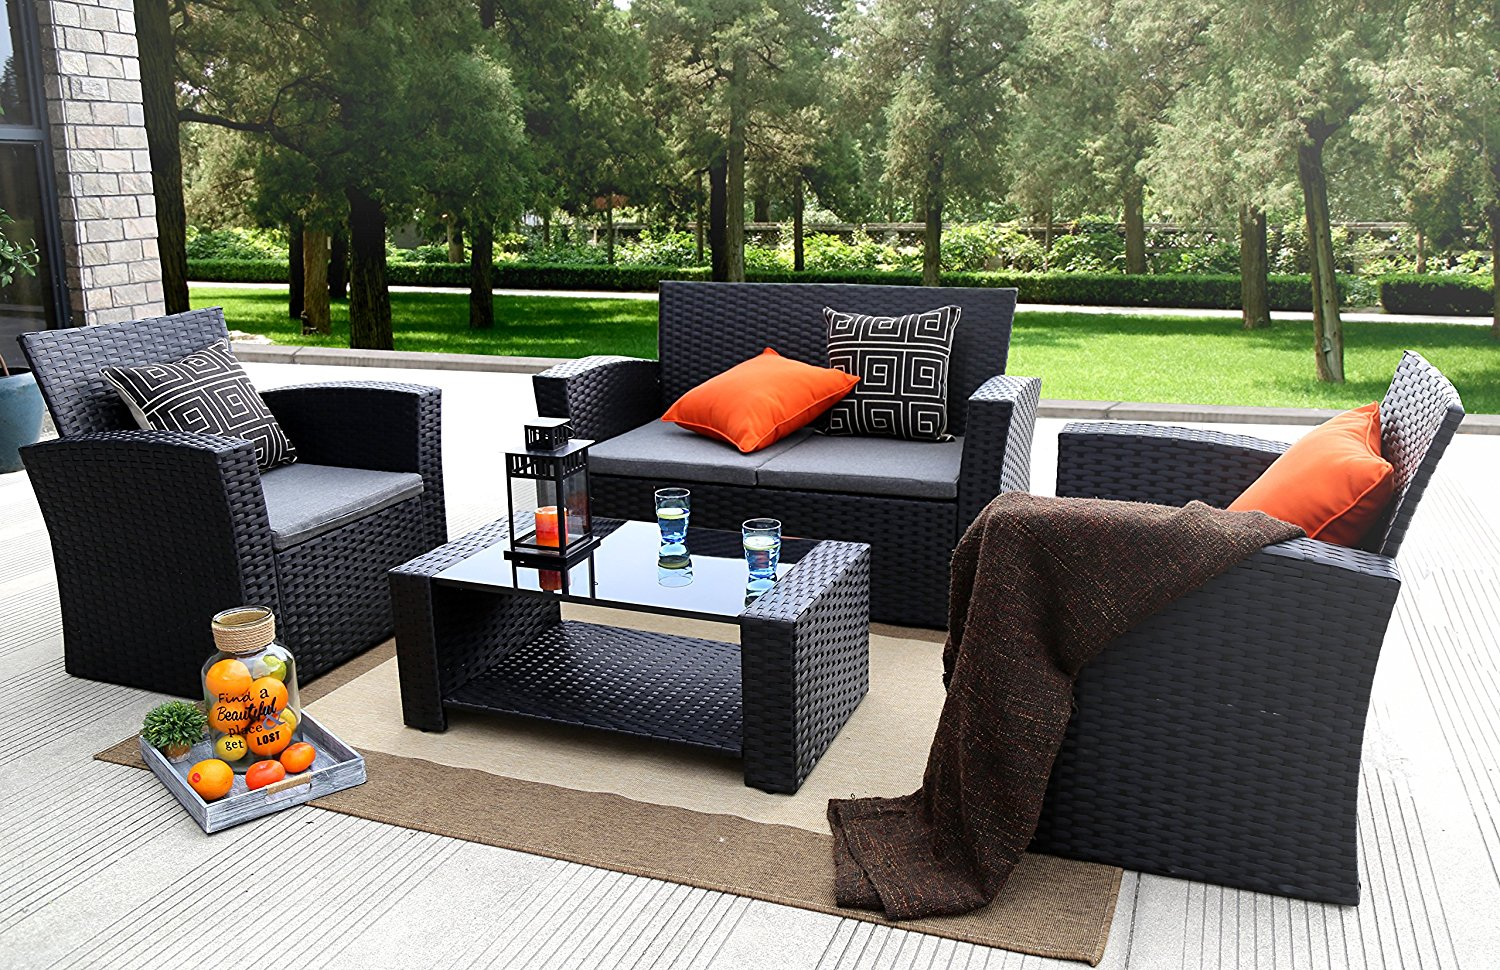 Baner Garden (N87) 4 Pieces Outdoor Furniture Complete Patio Cushion Wicker P.E Rattan Garden & Resin Wicker Patio Furniture u2013 Nice Outdoor Addition | Cool Ideas ...